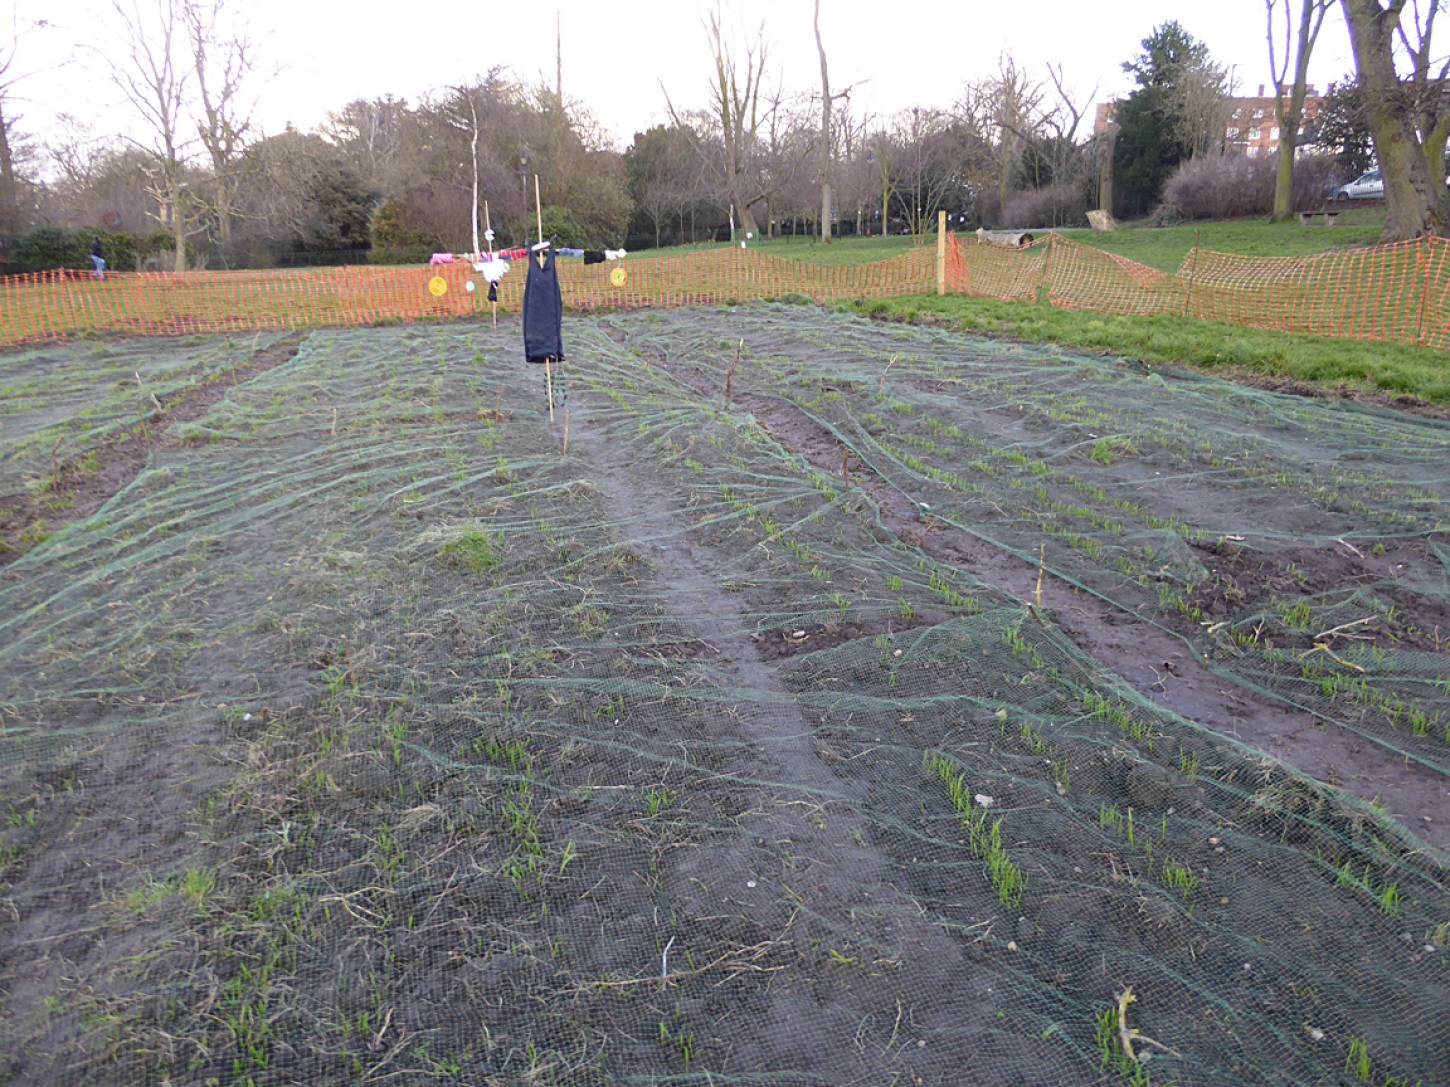 winter wheat up nicely with lovely scarey scare crows from local school - 5:33pm&nbsp;16<sup>th</sup>&nbsp;Mar.&nbsp;'18  <a href='http://maps.google.com/?t=h&q=51.464969,-0.092317&z=18&output=embed' target=_blank><img src='http://www.brockwell-bake.org.uk/img/marker.png' style='border:none;vertical-align:top' height=16px></a>